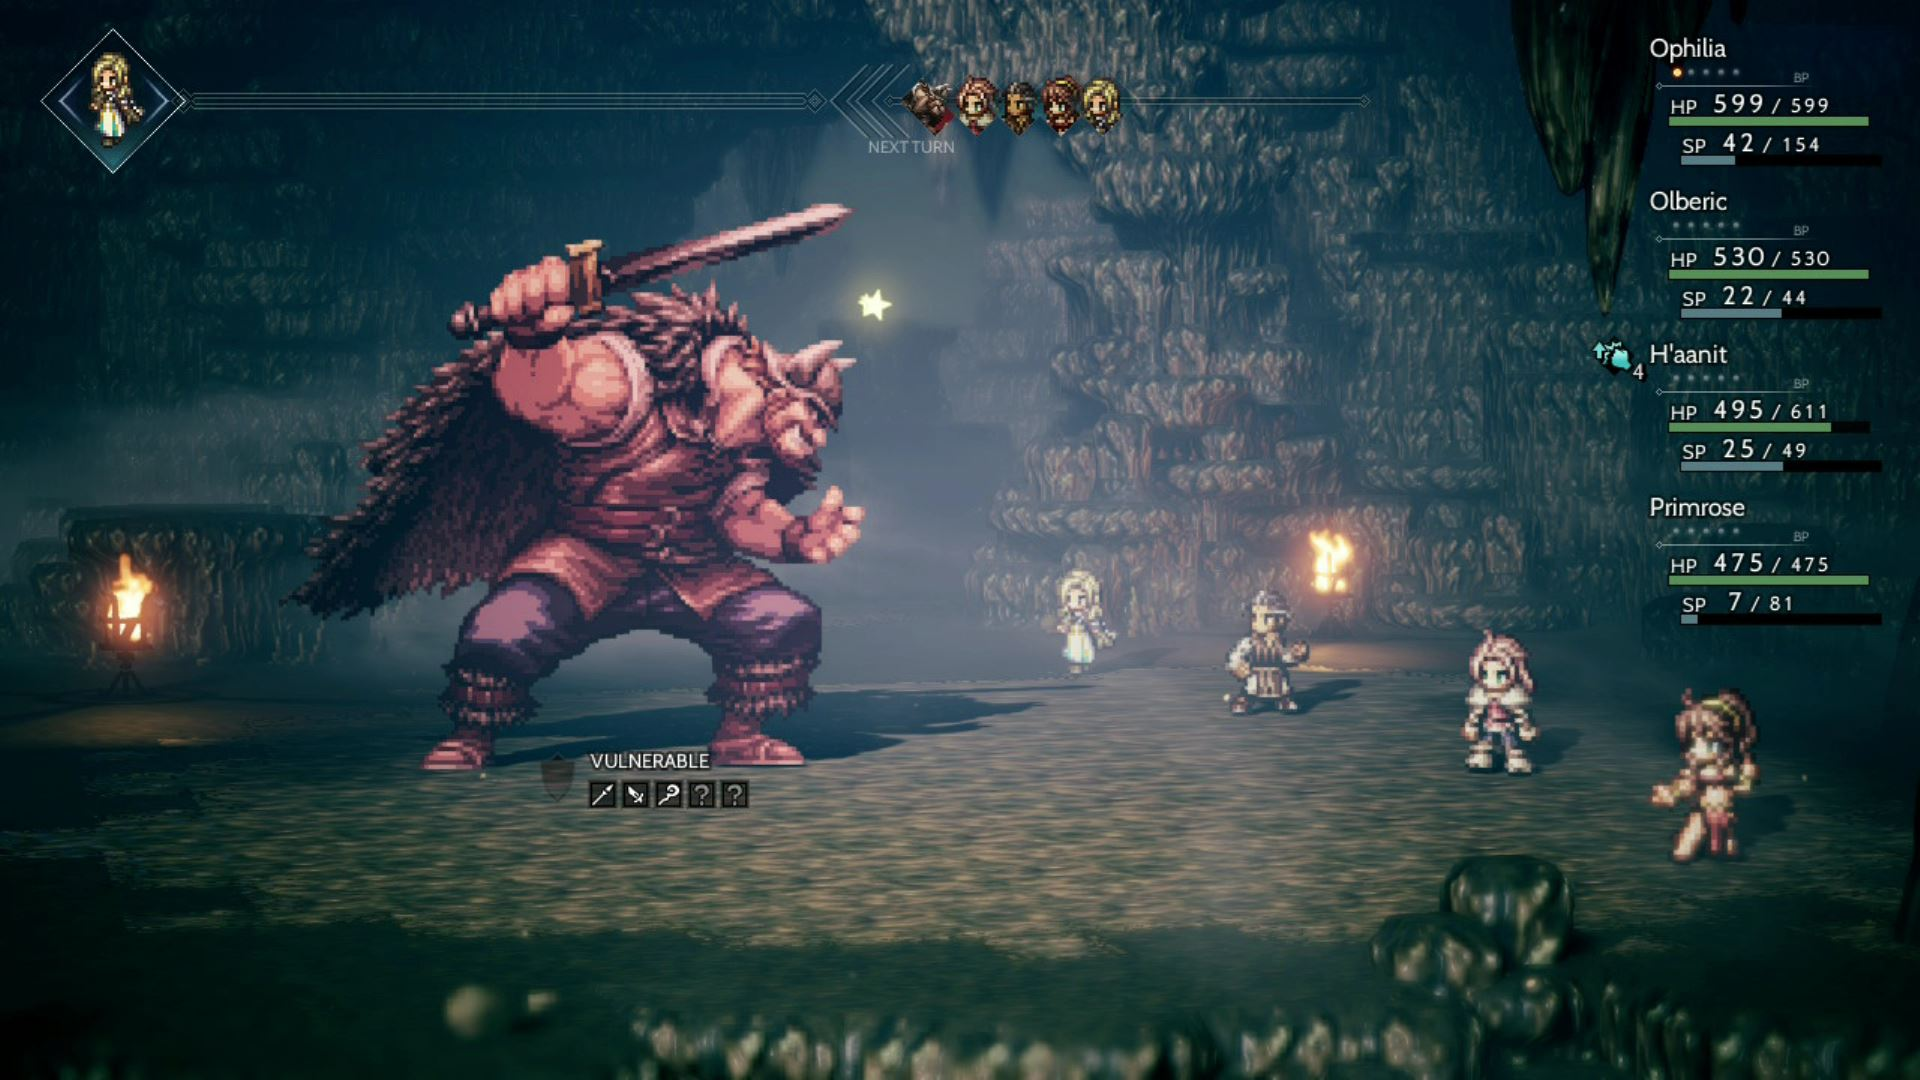 Octopath Traveler Review - 5